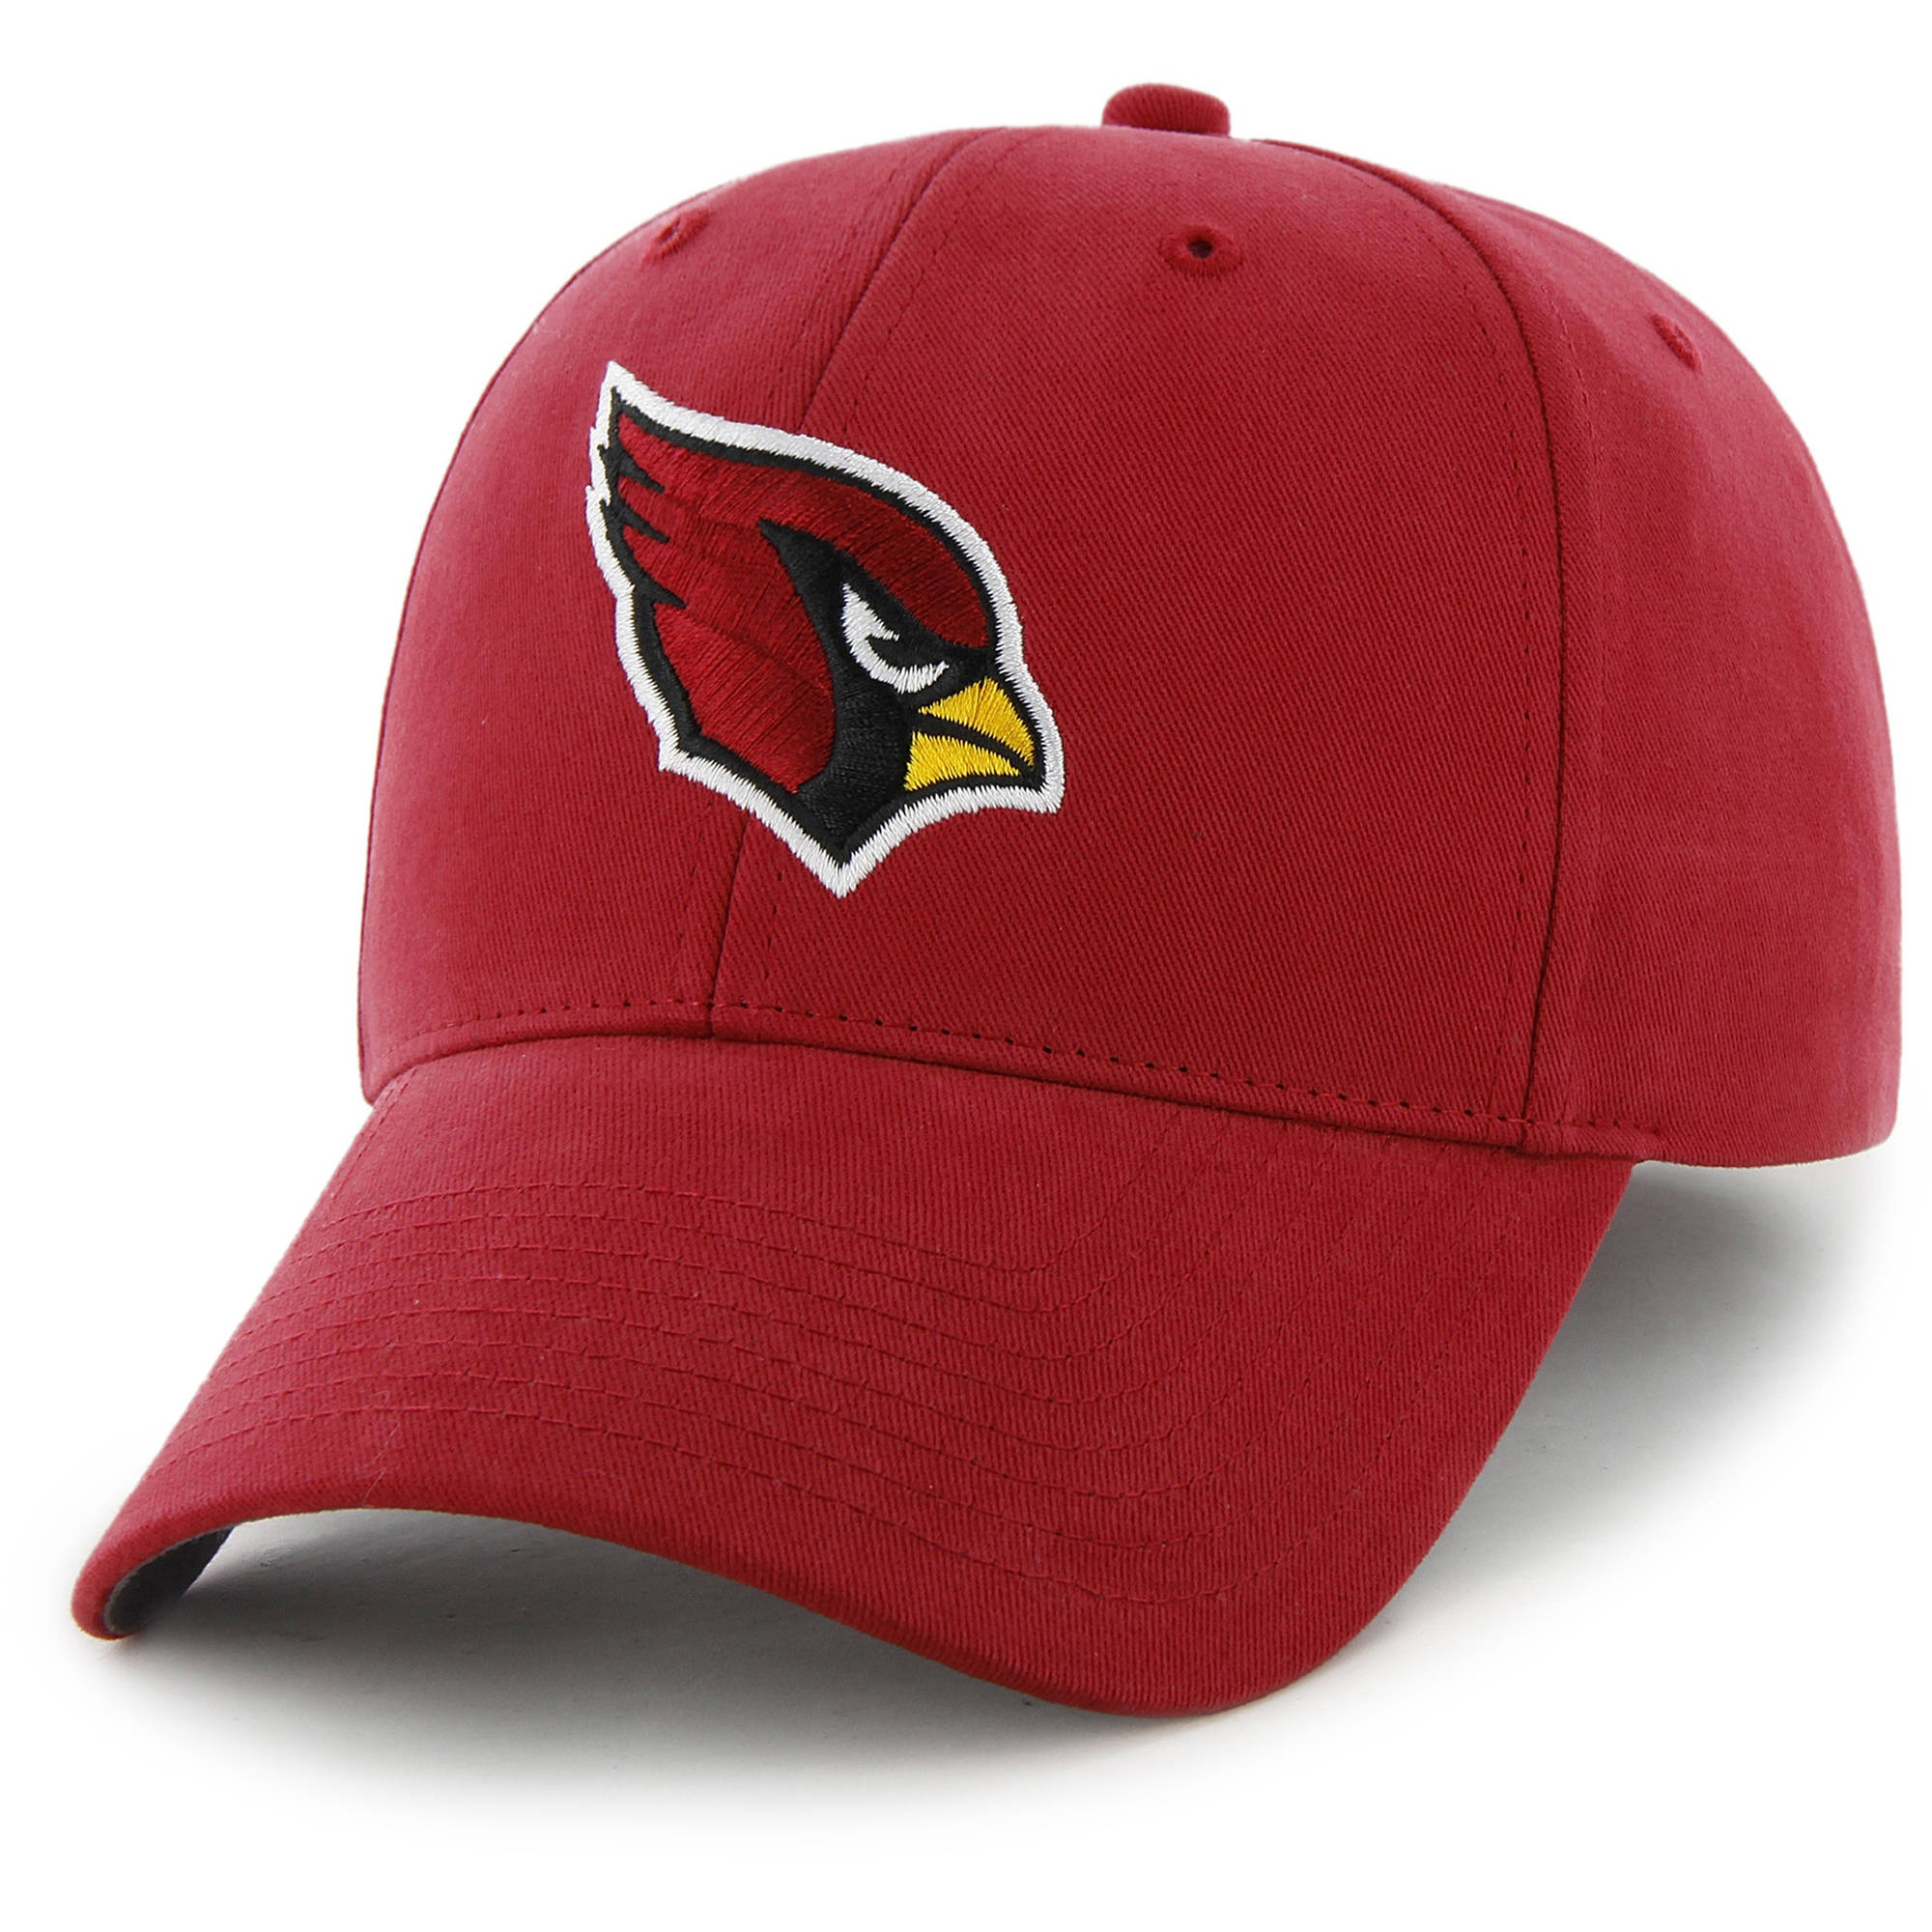 NFL Arizona Cardinals Basic Cap / Hat - Fan Favorite